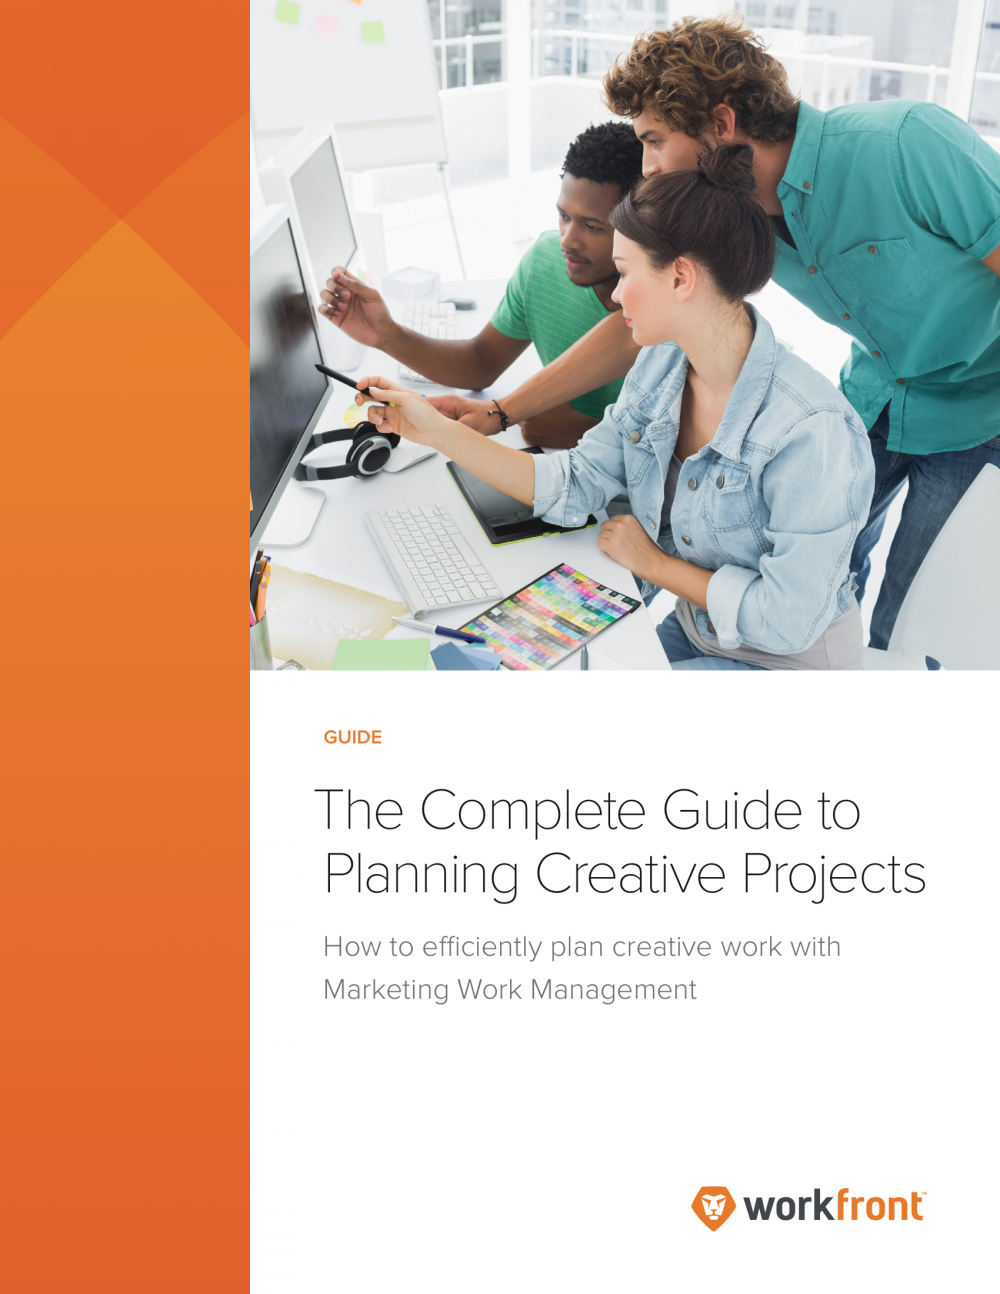 The Complete Guide to Planning Creative Projects